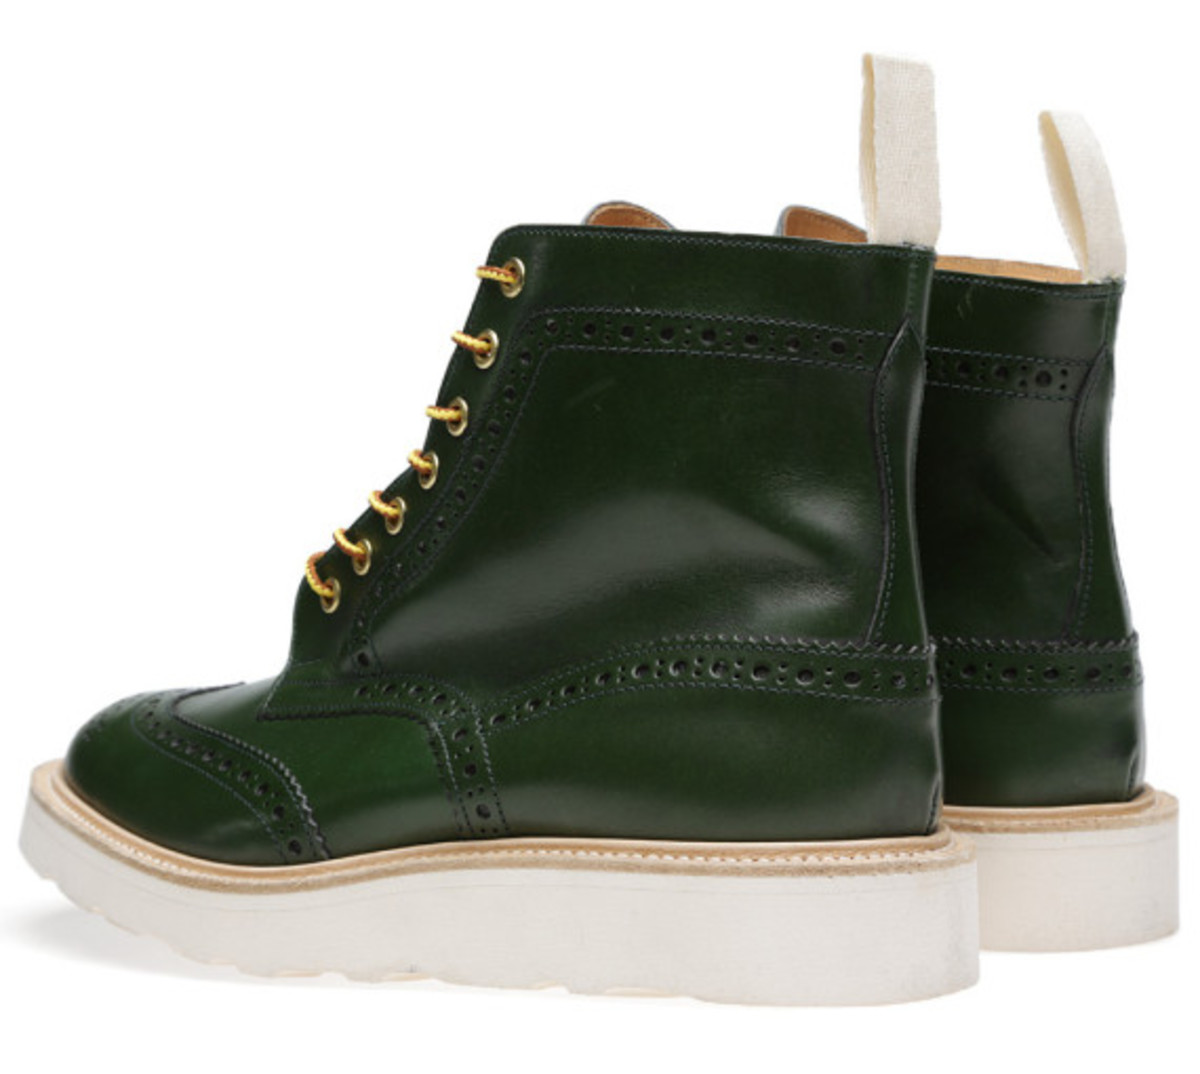 end-trickers-vibram-sole-stow-boot-06